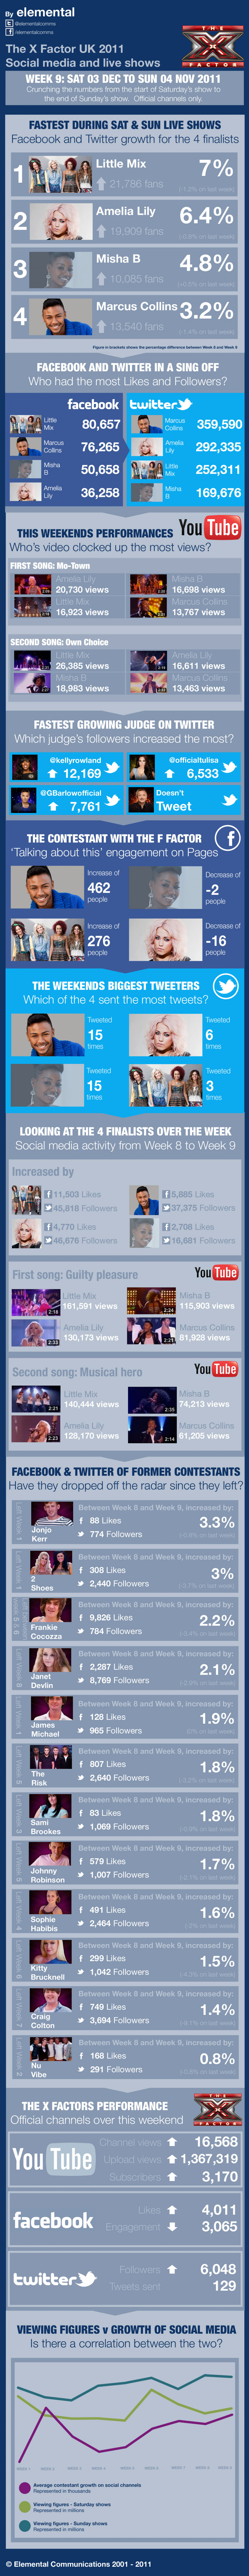 XFactor social media infographic for Week 9 Infographic